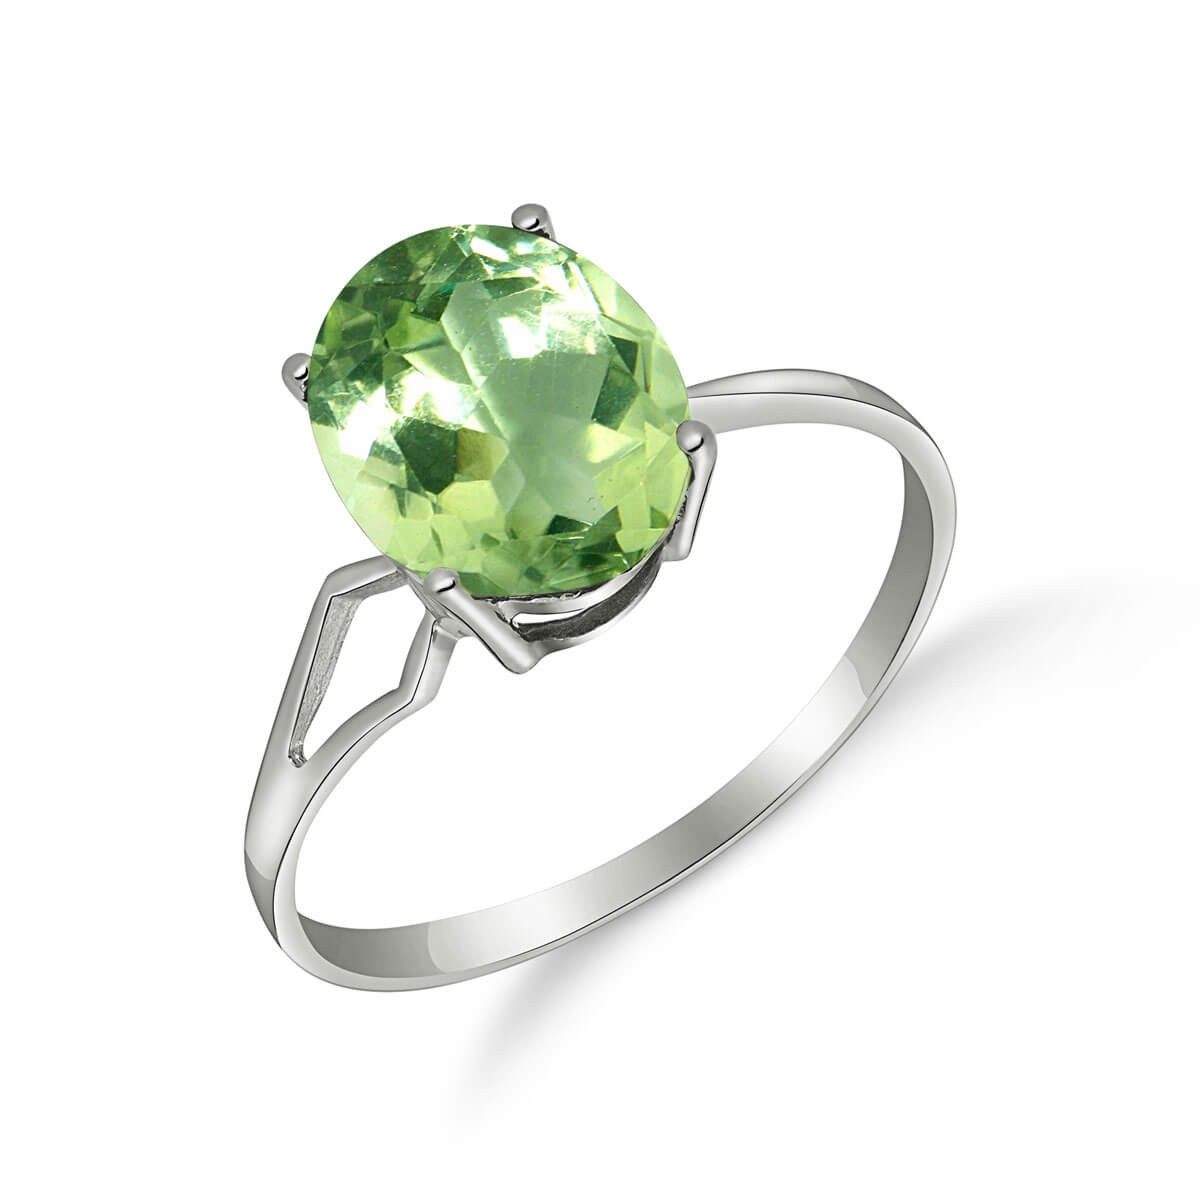 Green Amethyst Claw Set Ring 2.2 ct in Sterling Silver